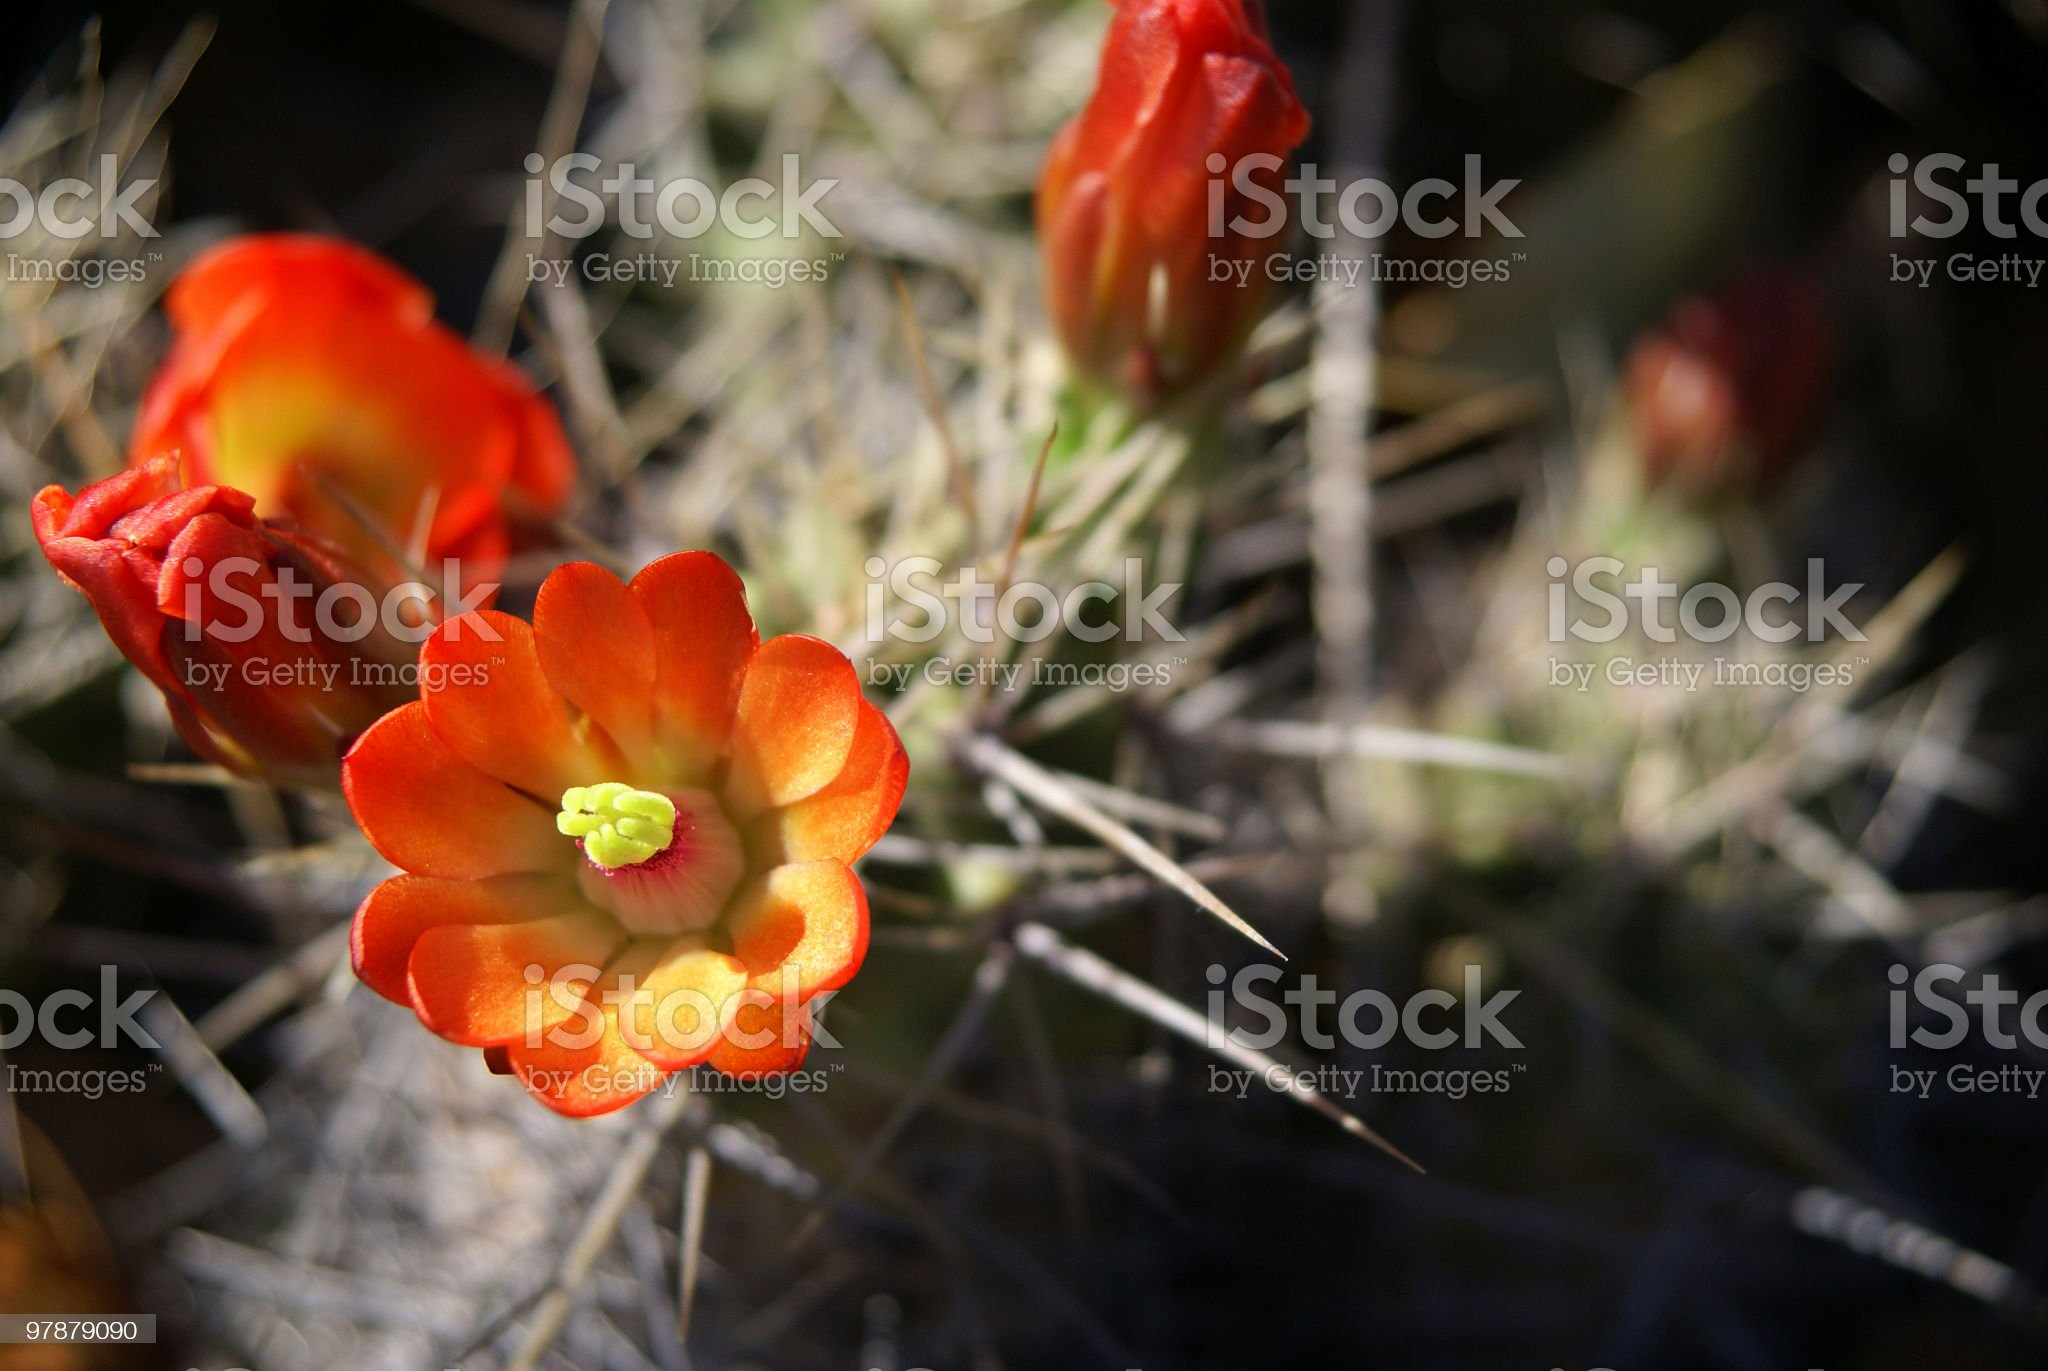 Red cactus flower royalty-free stock photo